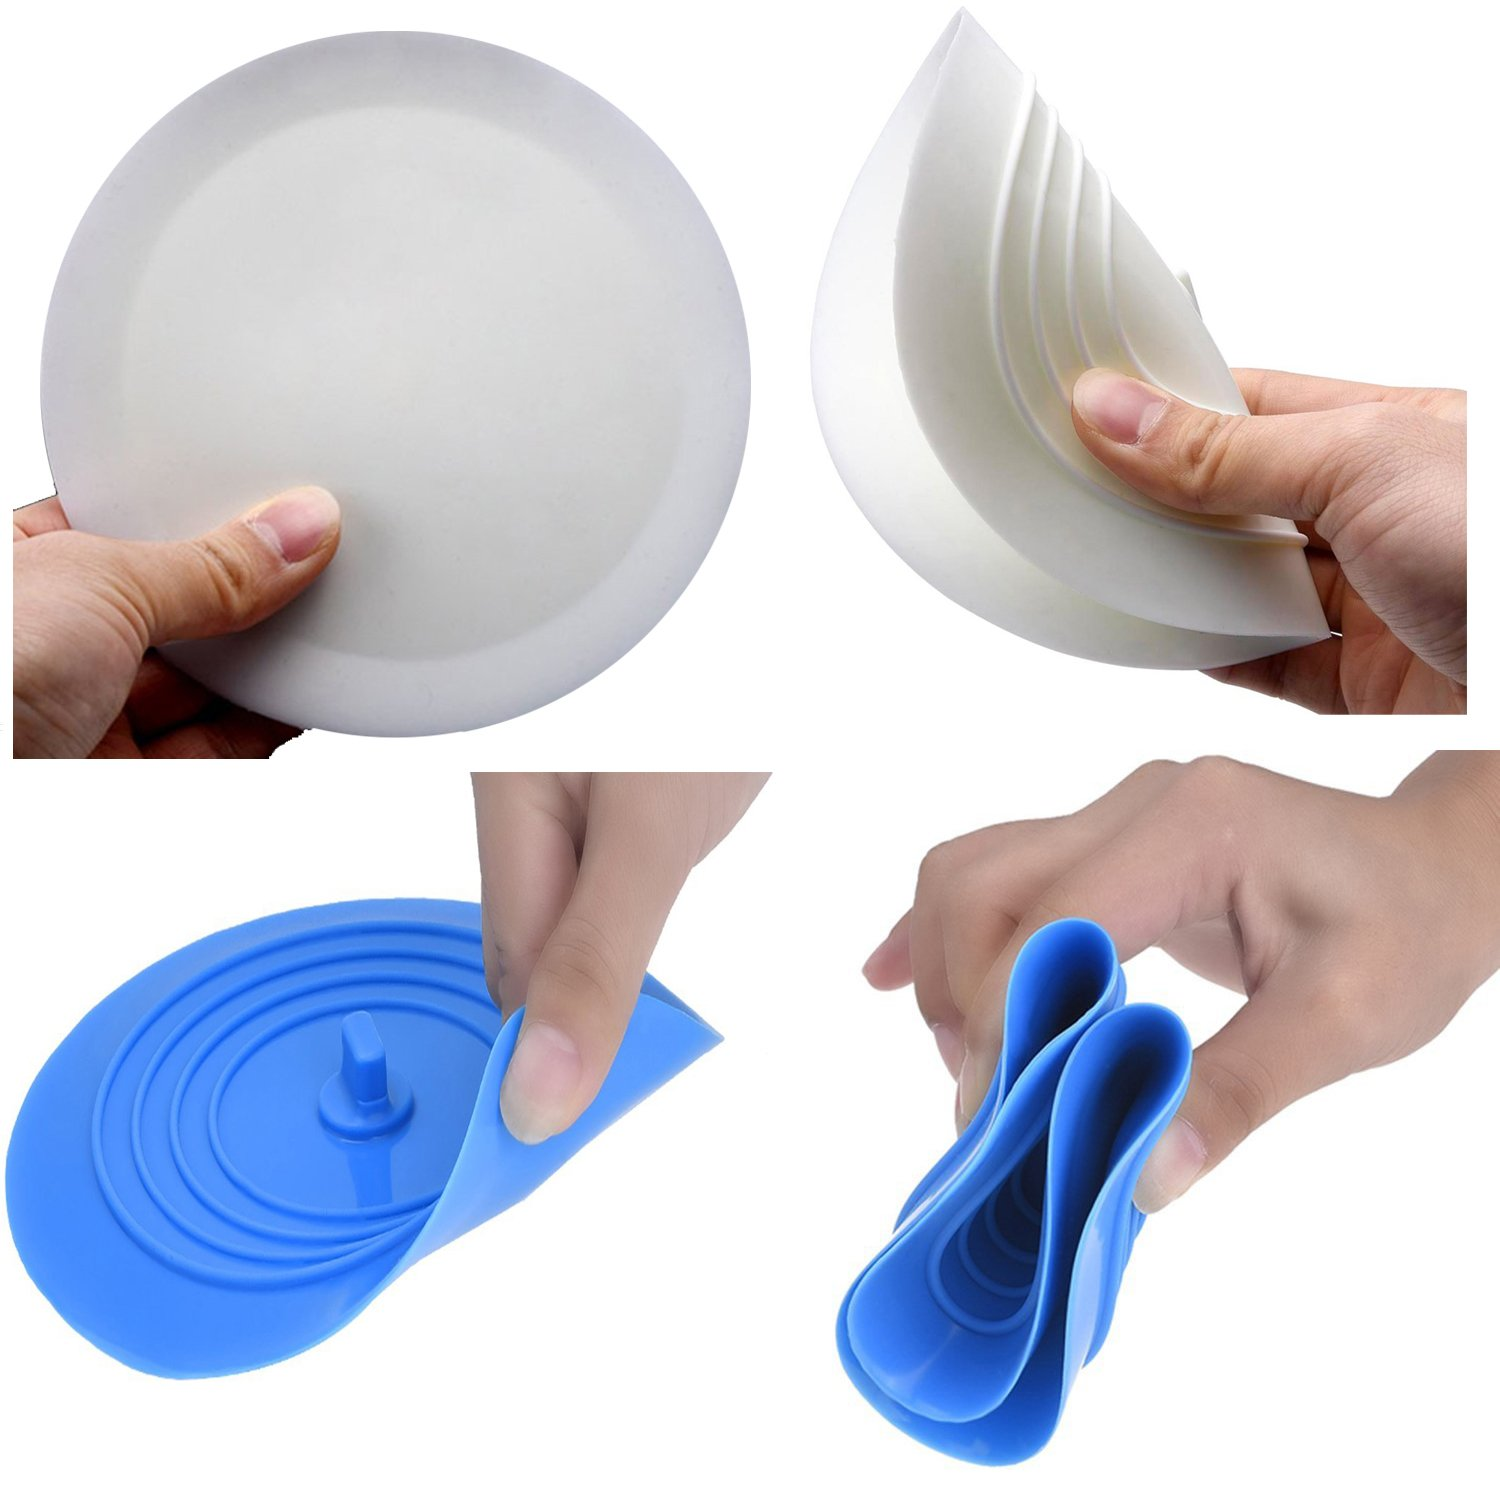 White/&Gray/&Blue 6 inches Large Silicone Bathtub Stopper Drain Plug Sinks Hair Stopper Flat Suction Cover for Kitchen Bathroom and Laundry HAL-062 V-TOP Tub Stopper 3 Pack